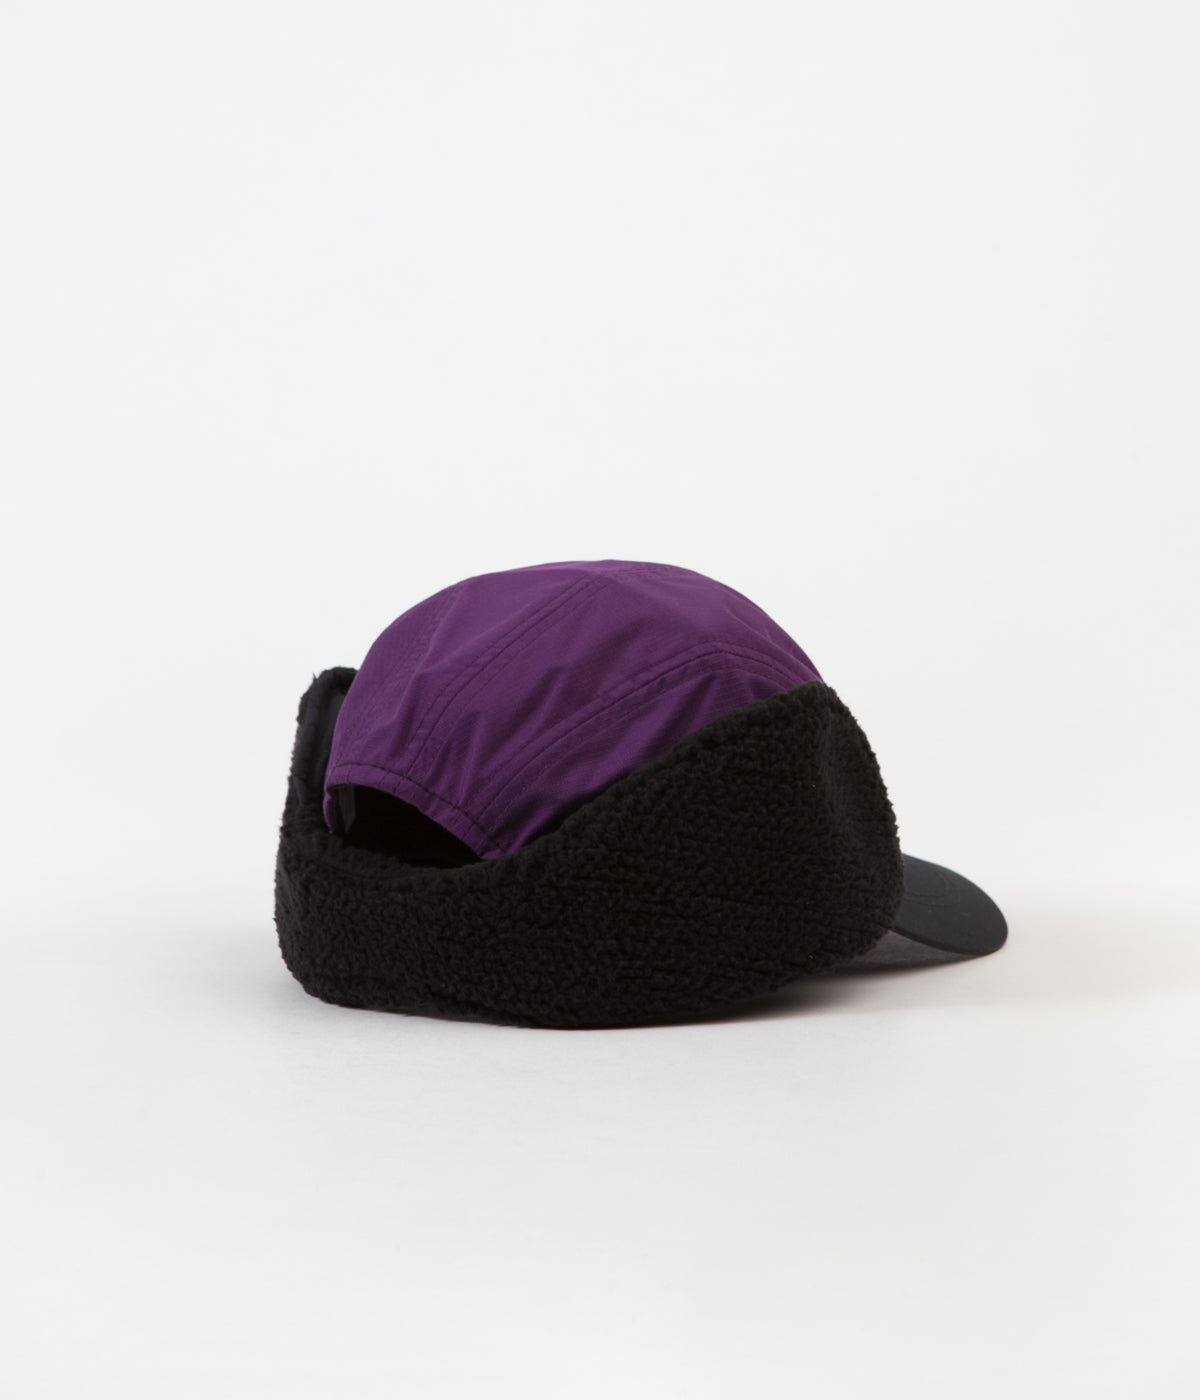 ... Nike ACG Tailwind Cap - Black   Night Purple   Black ... 2fdac8f77d54